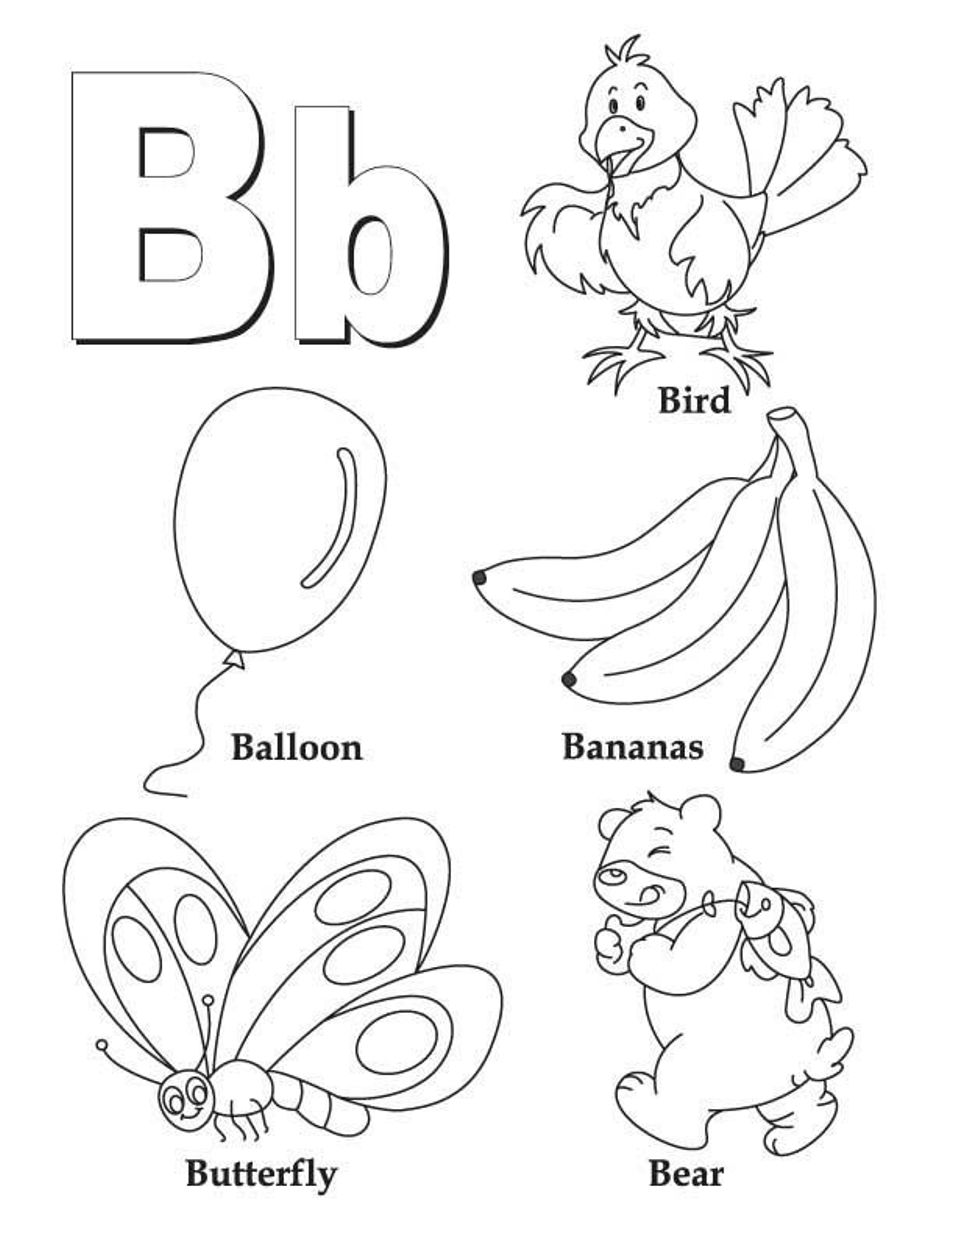 alphabet-coloring-pages-b-word-printable-animals